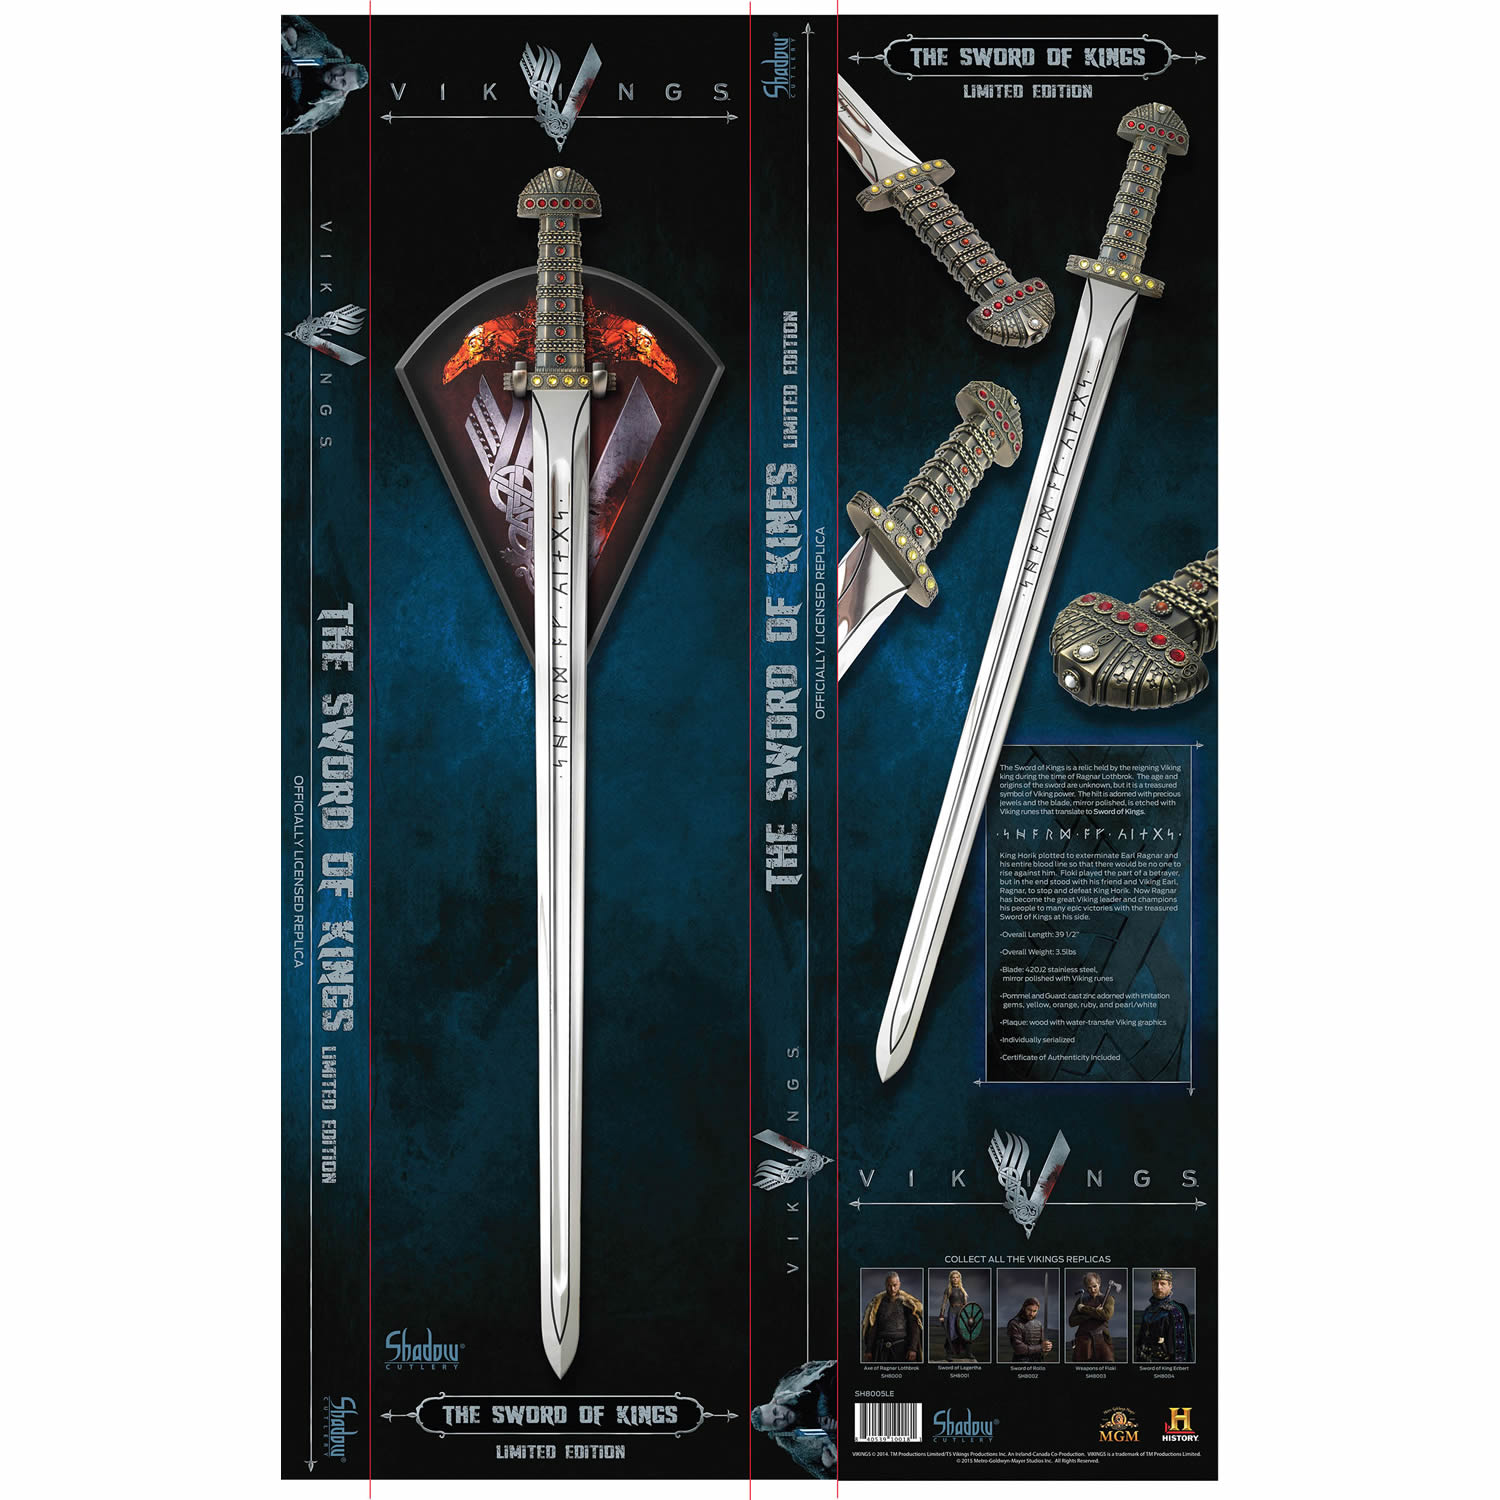 Vikings Sword of Kings Limited Edition